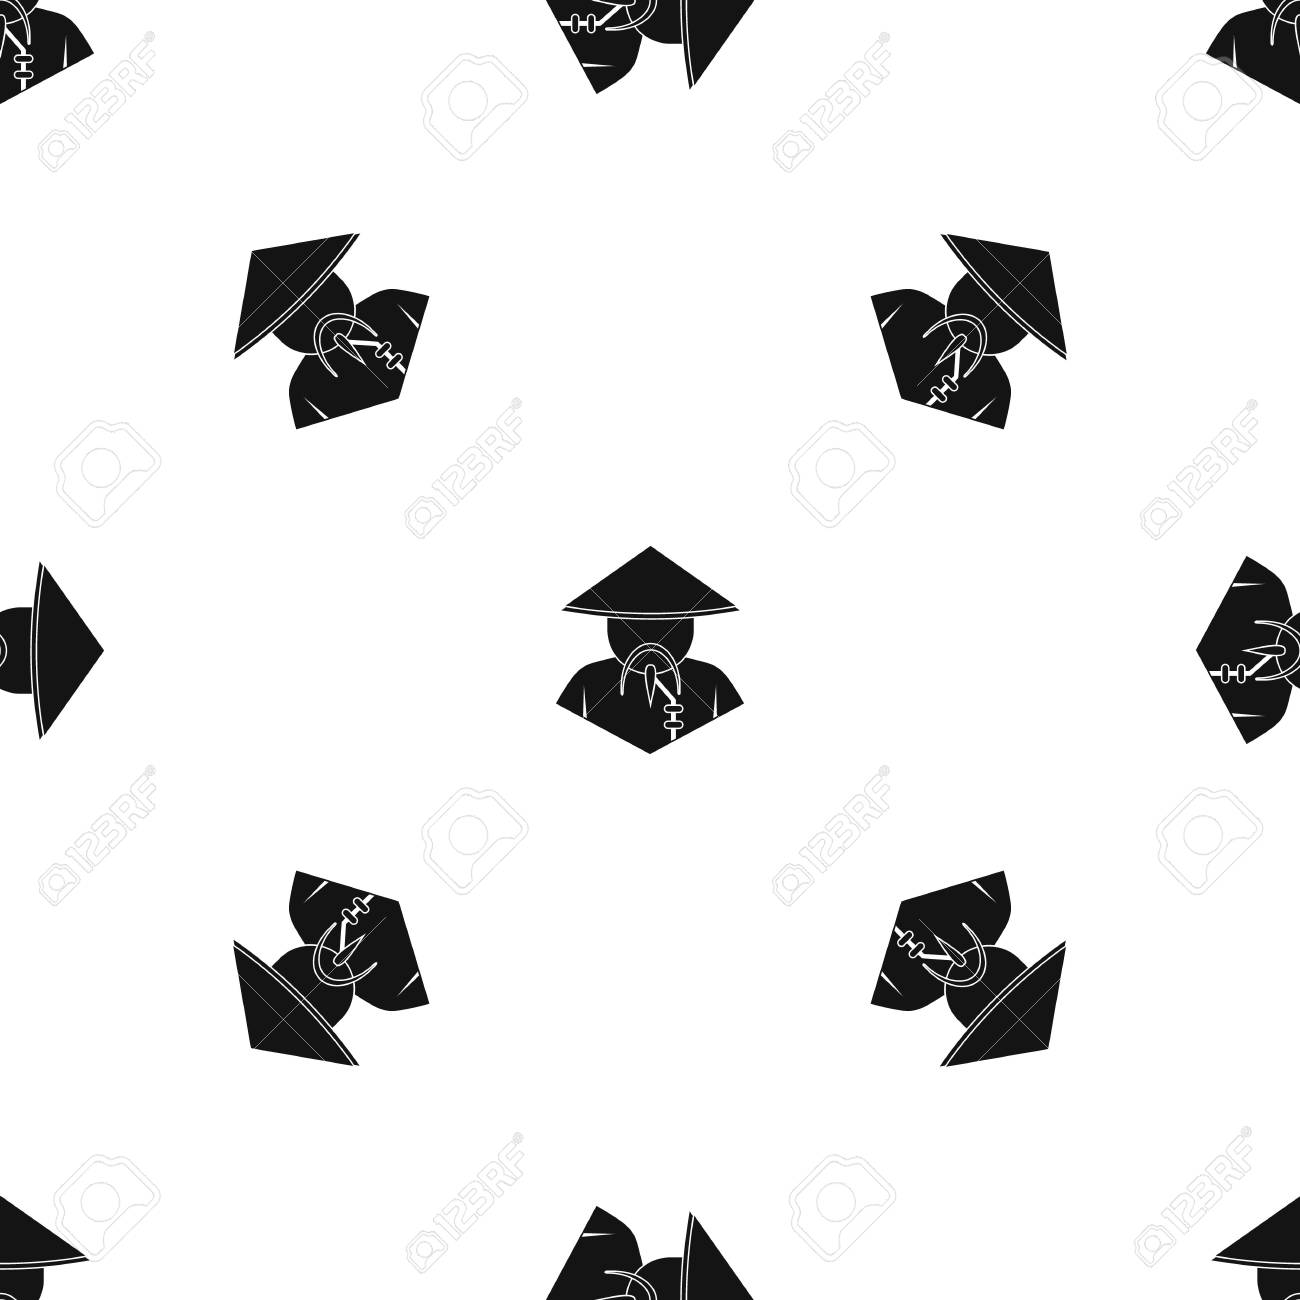 Asian man in conical hat pattern seamless black Stock Vector - 83949537 eae8935c3b6